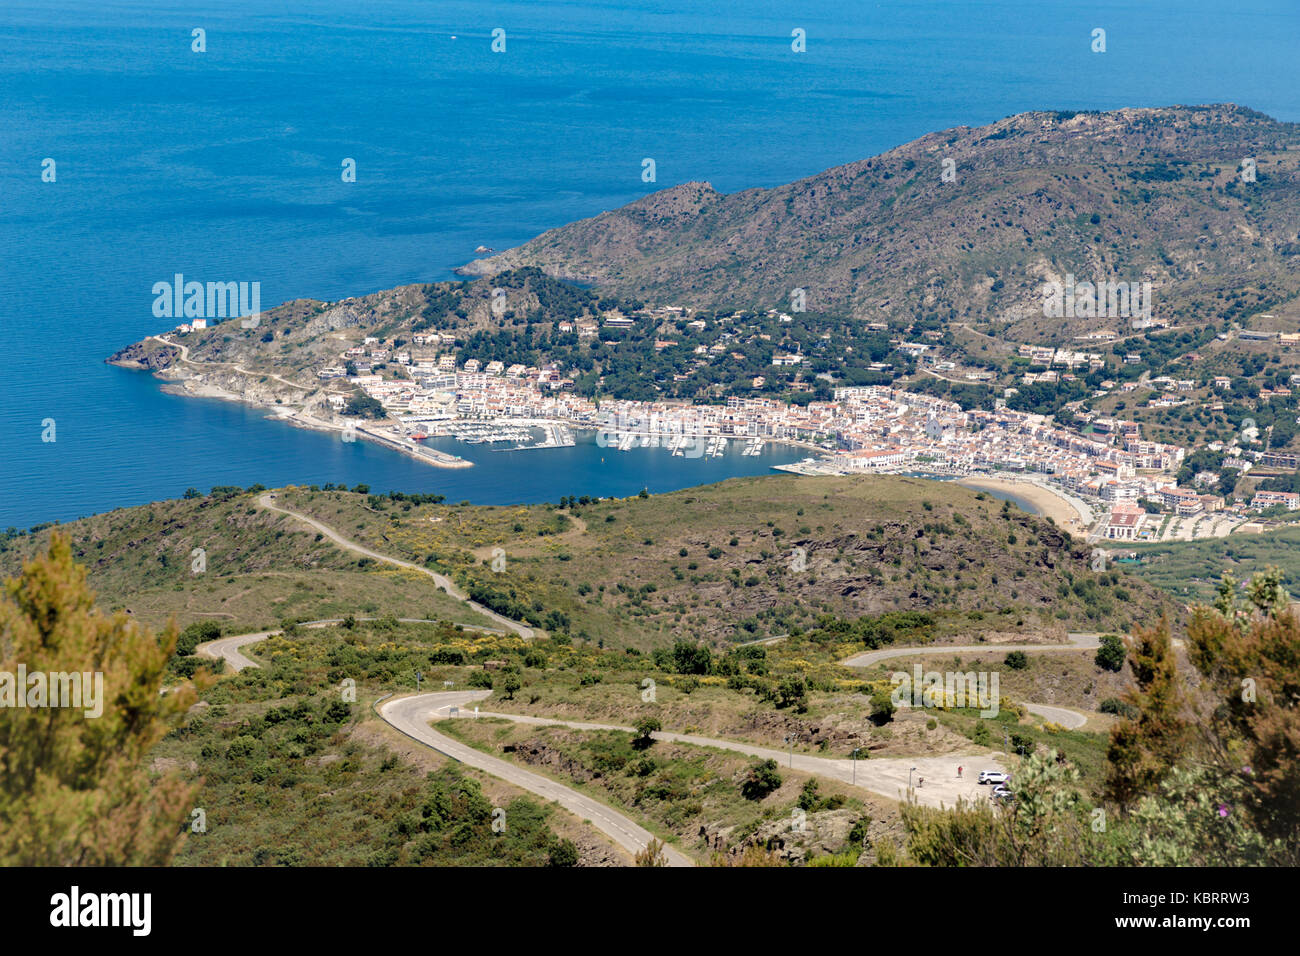 Spanish coastline city bay shot from top of the hill Stock Photo